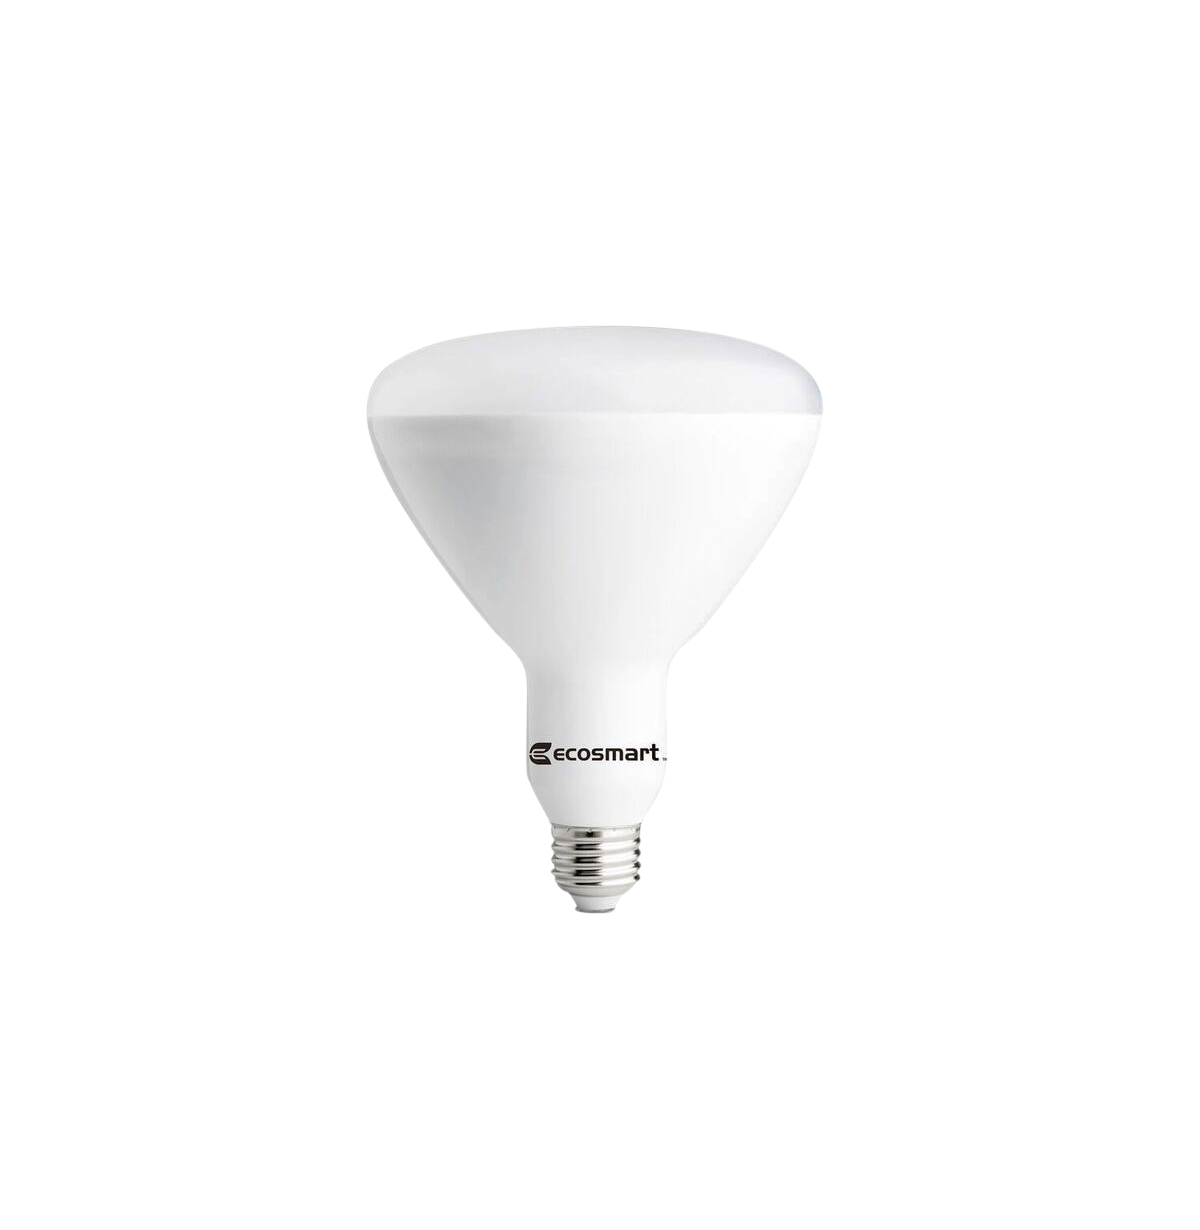 EcoSmart soft white dimmable LED bulb